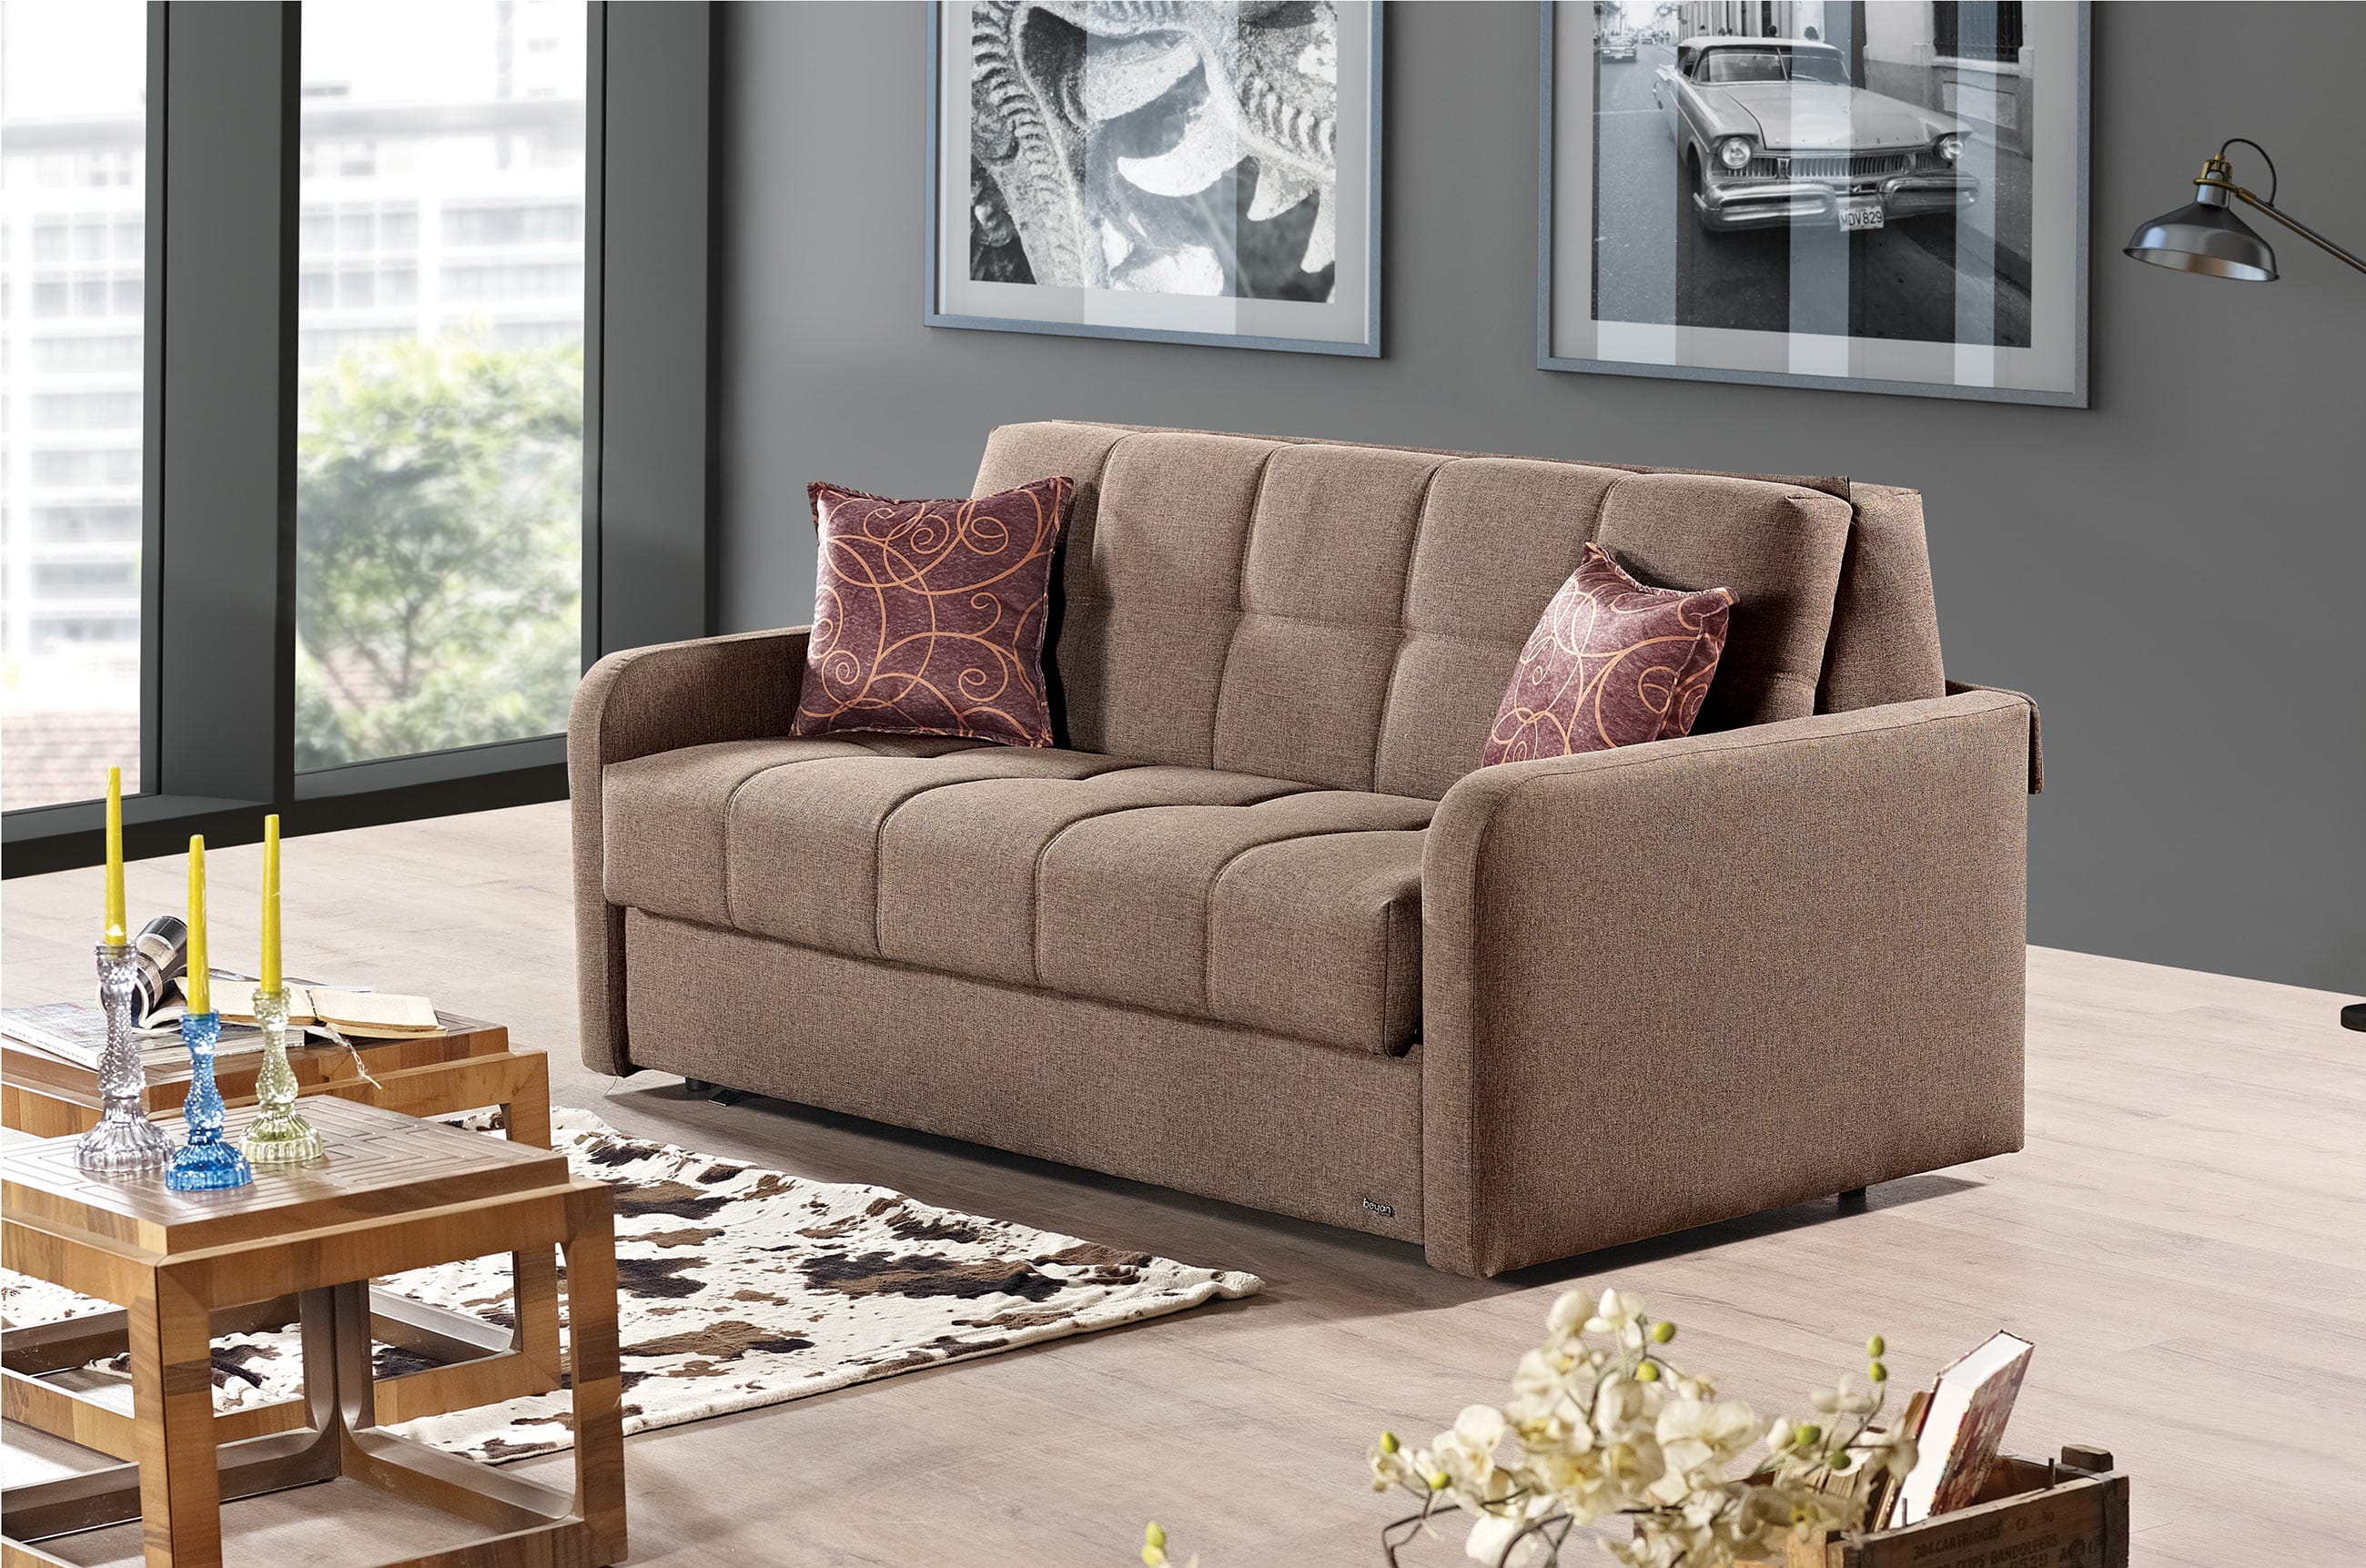 Madrid Brown Fabric Sofa Bed By Empire Furniture Usa